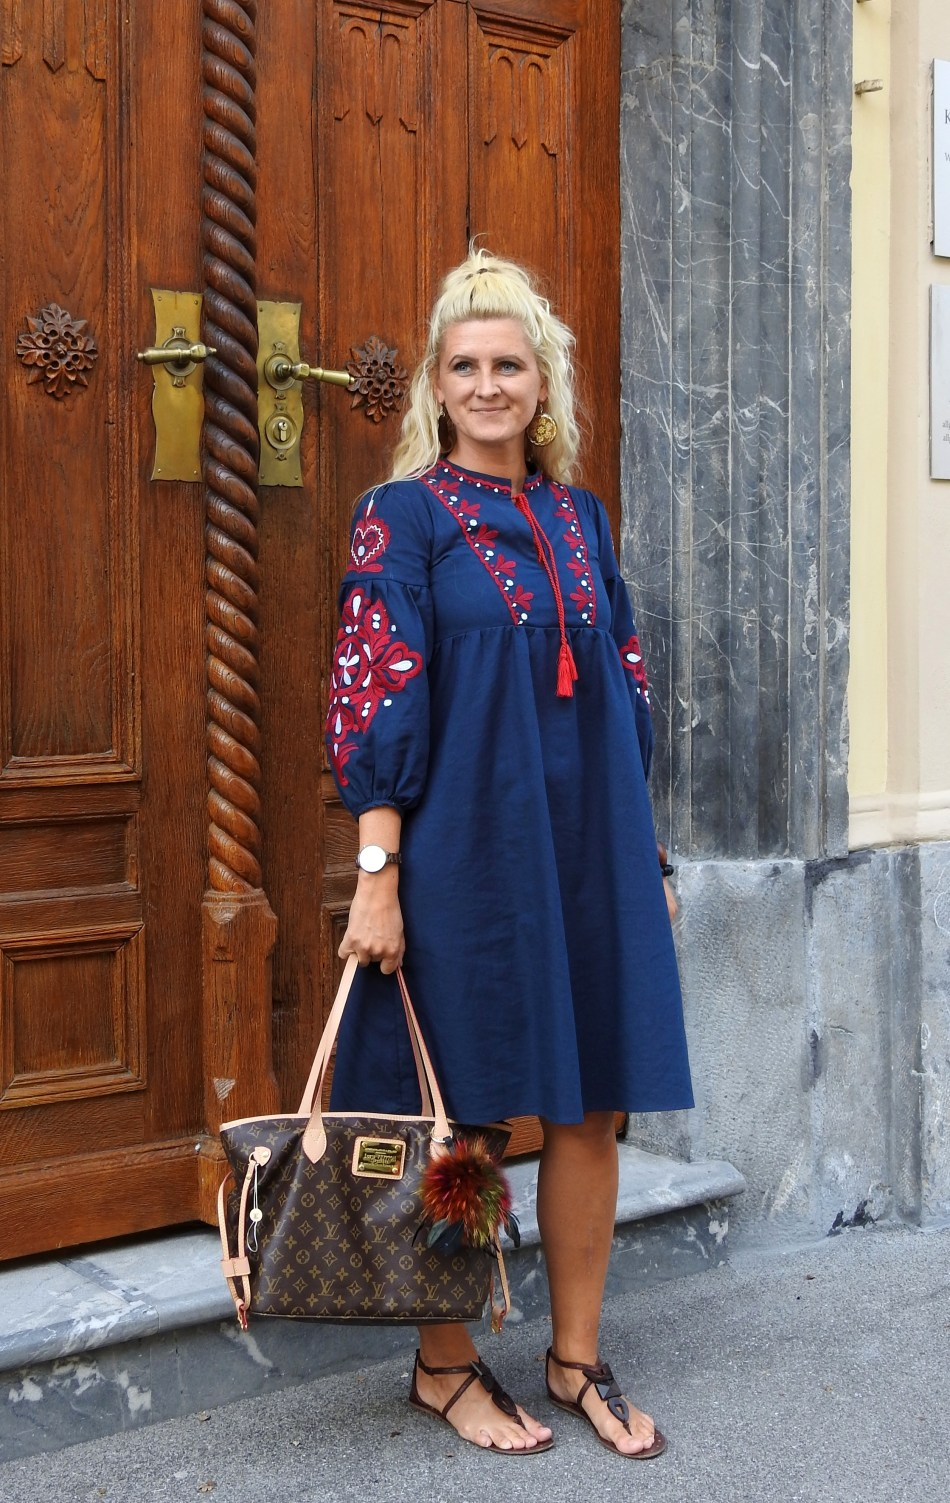 Embroidered-Dress-Louis-Vuitton-Bag-Sandals-carrieslifestyle-Tamara-Prutsch-Zaful